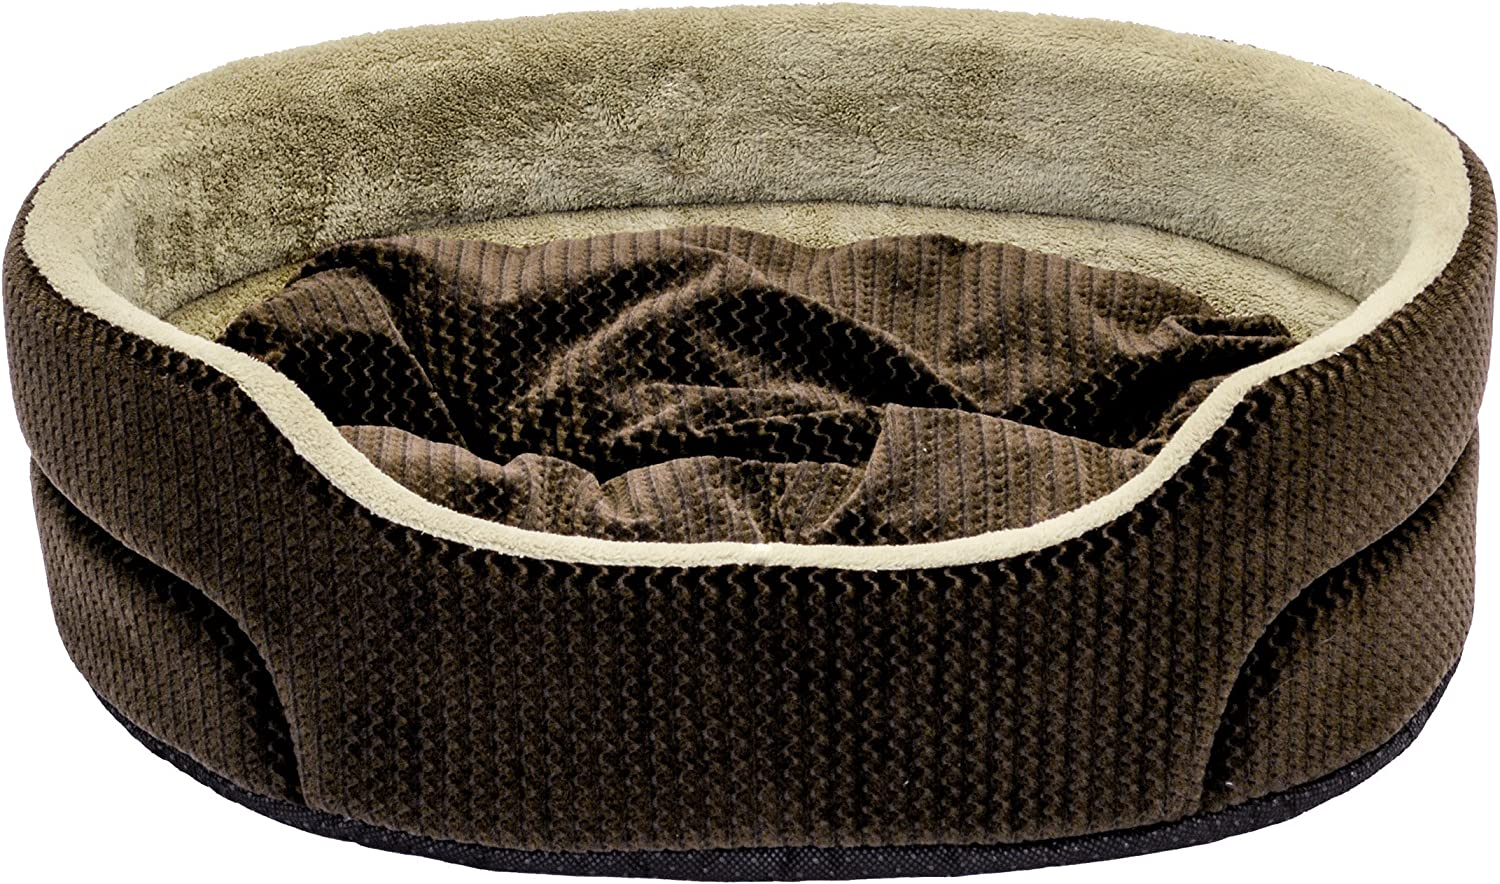 Dallas Manutacturing Co. Textured 19  Oval Pet Bed, Brown